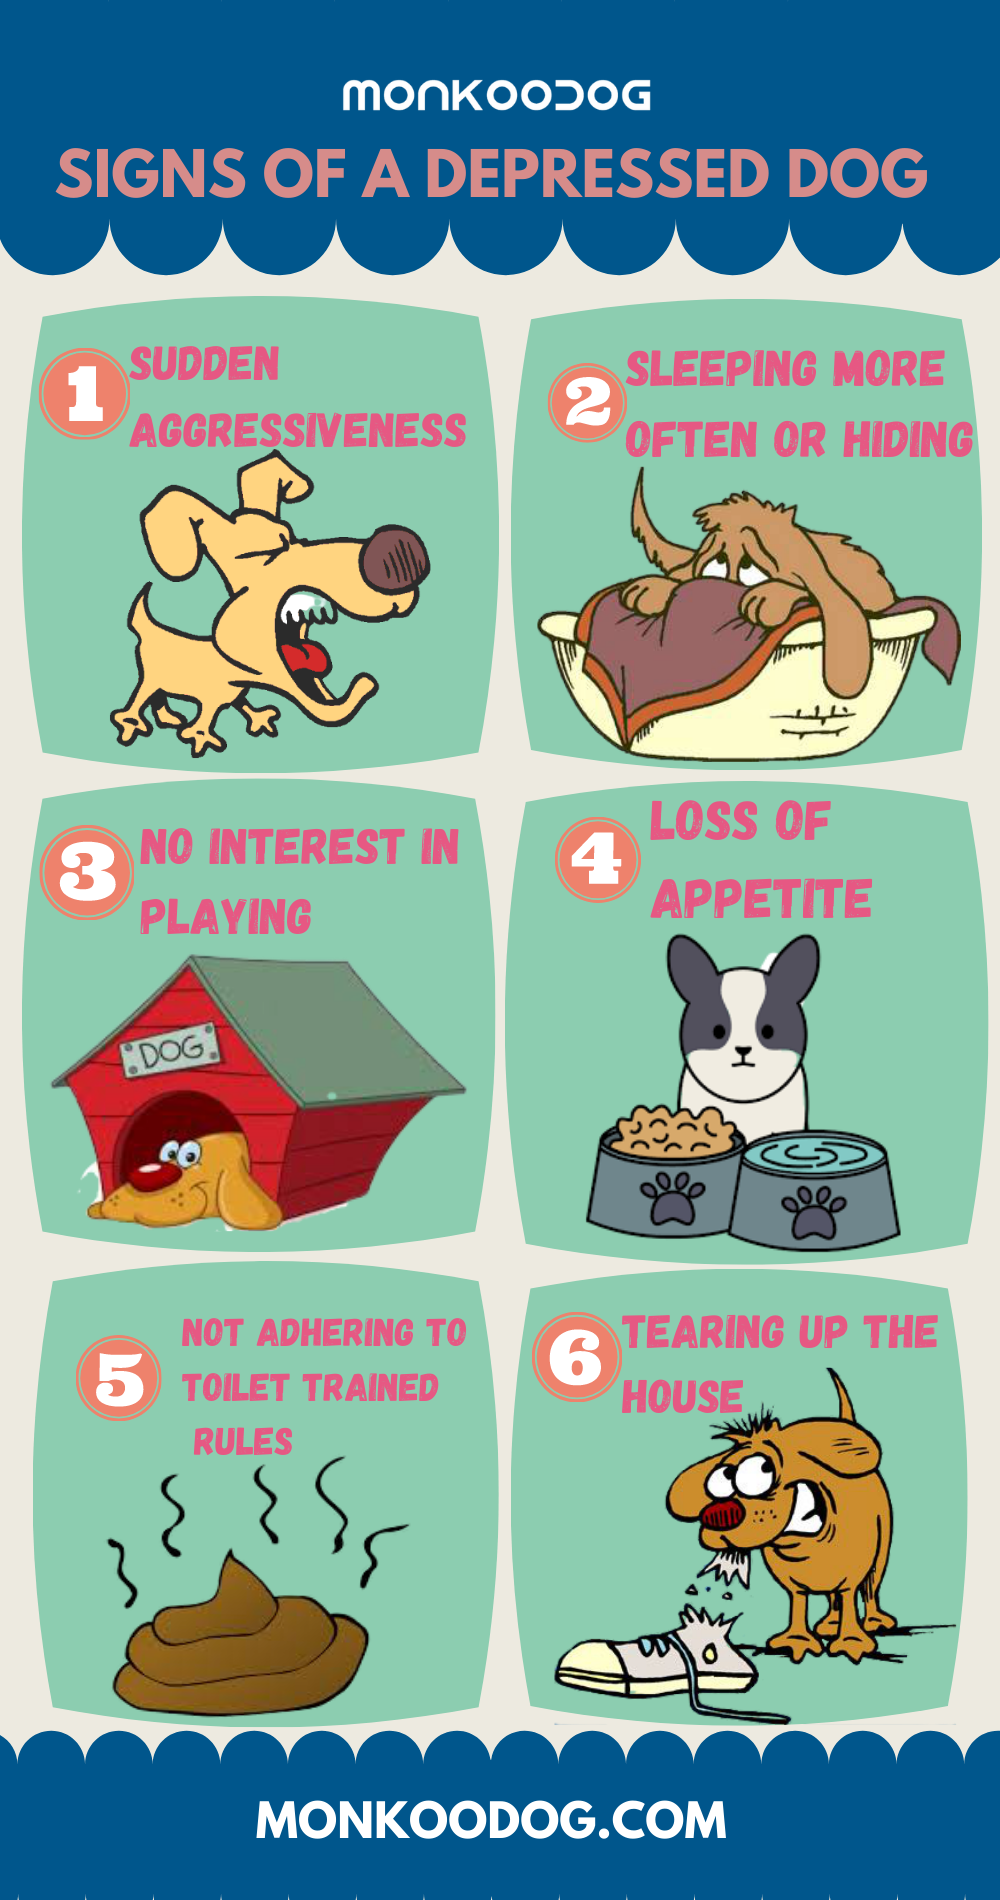 6 SIGNS OF A DEPRESSED DOG